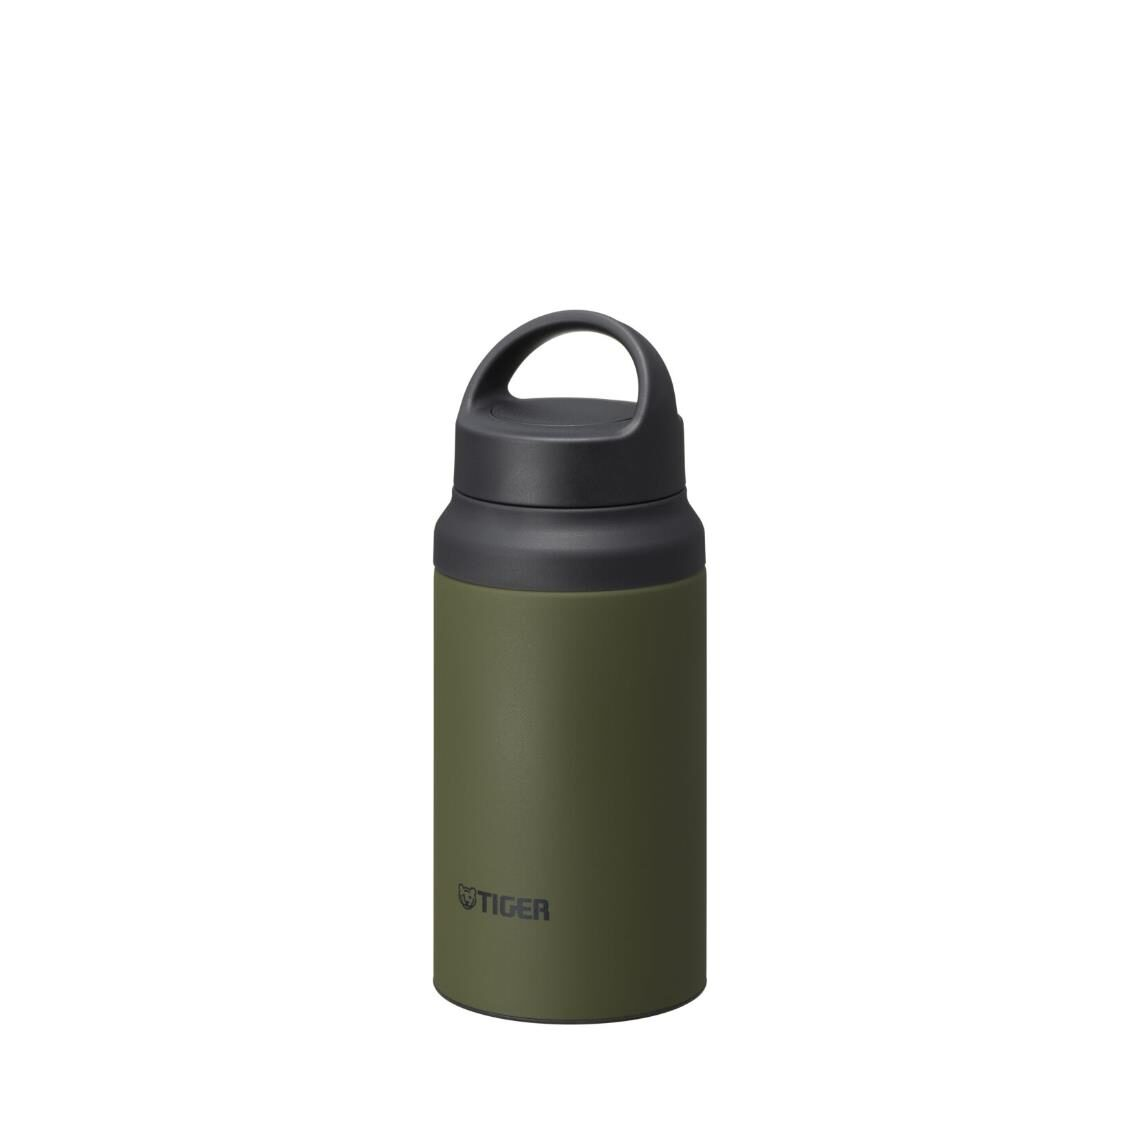 Tiger 400Ml Double Stainless Steel Bottle - Moss Forest Mcz-S040 Gz